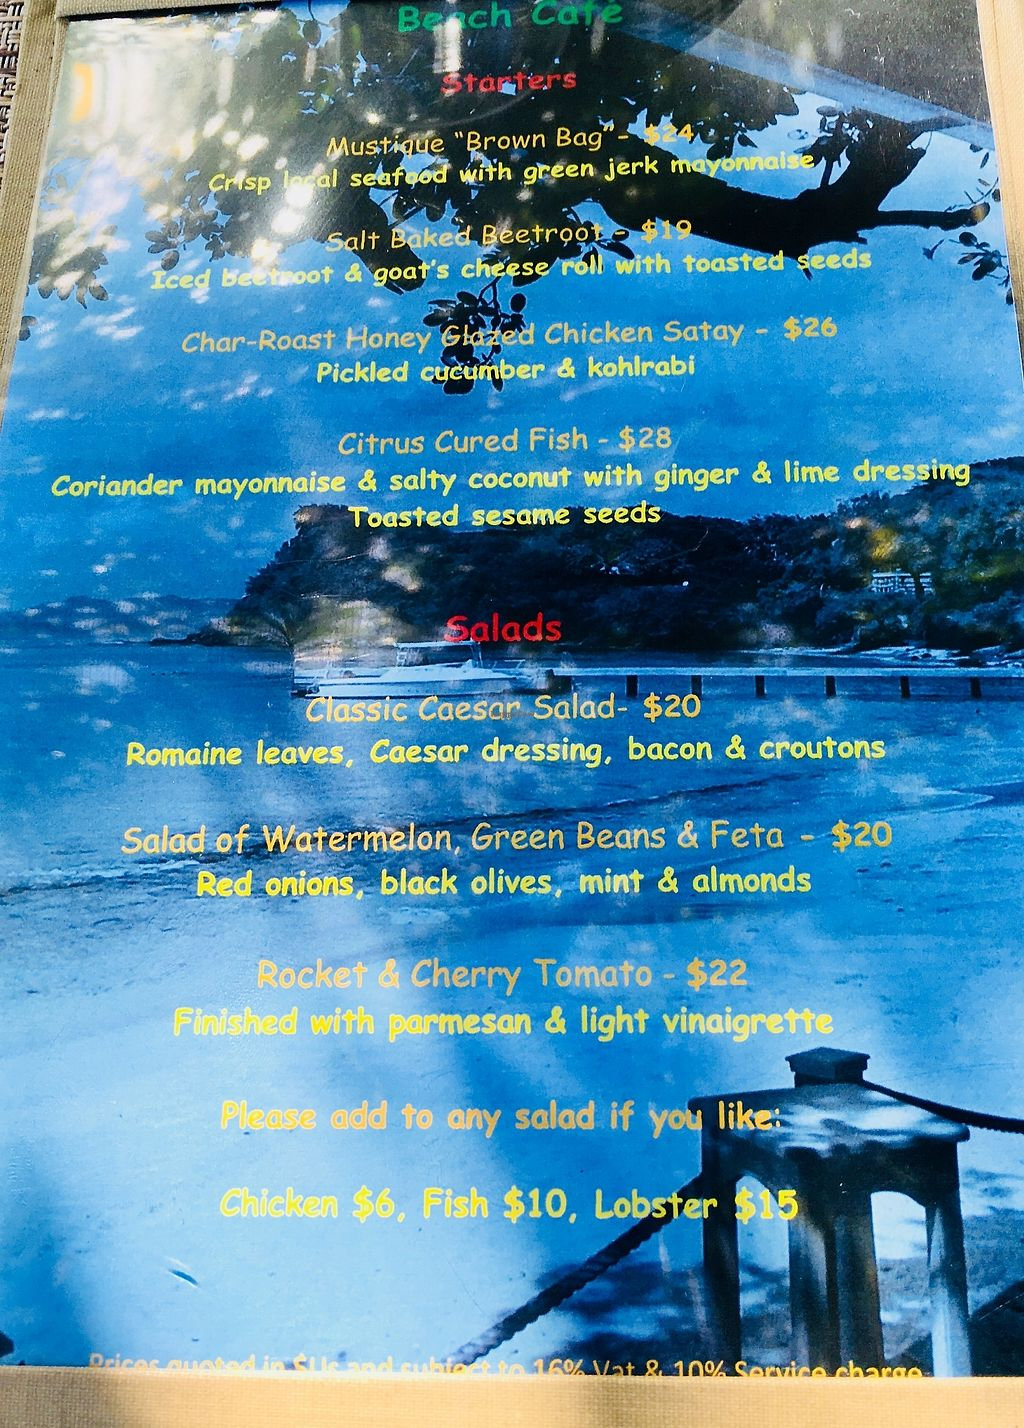 """Photo of Cotton House Beach Cafe  by <a href=""""/members/profile/veganmom"""">veganmom</a> <br/>Starters menu  <br/> November 22, 2017  - <a href='/contact/abuse/image/105673/328128'>Report</a>"""